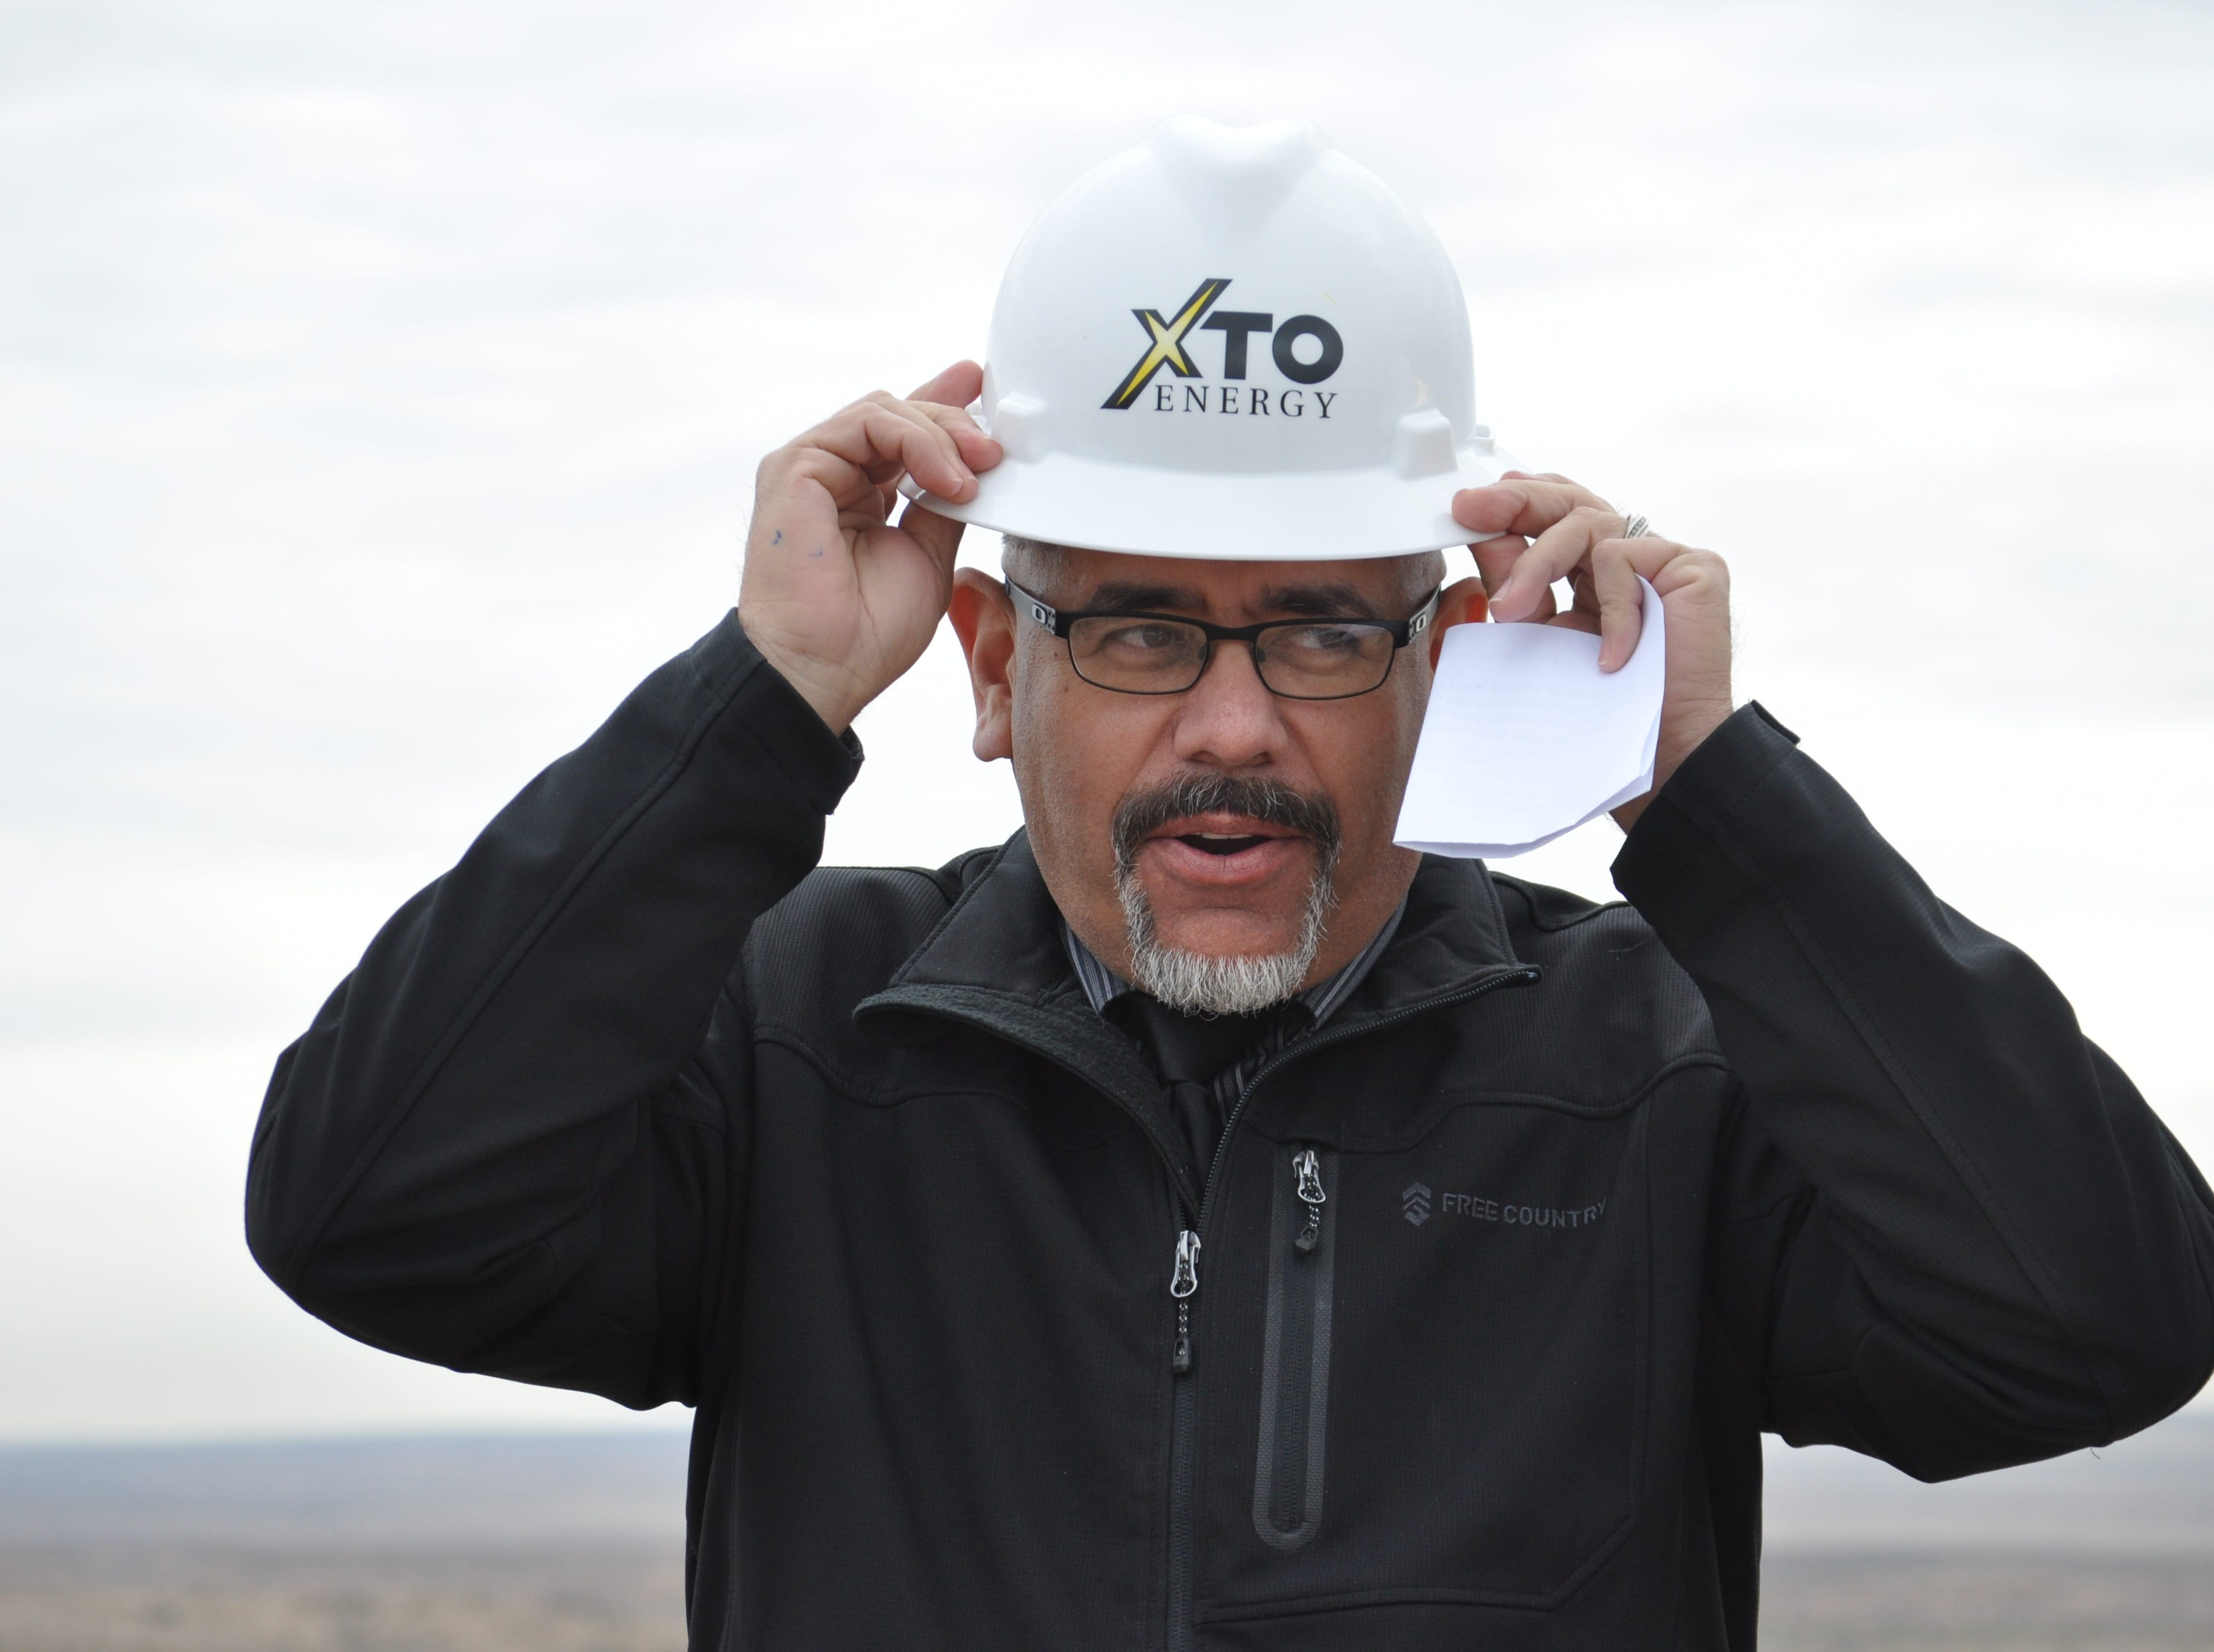 Carlsbad City Manager Mike Hernandez dons a hard hat Dec. 17 ahead of the ground breaking on a $12 million investment by the city and XTO Energy to build at 5 million gallon water tank and disinfection facility near Carlsbad, New Mexico.